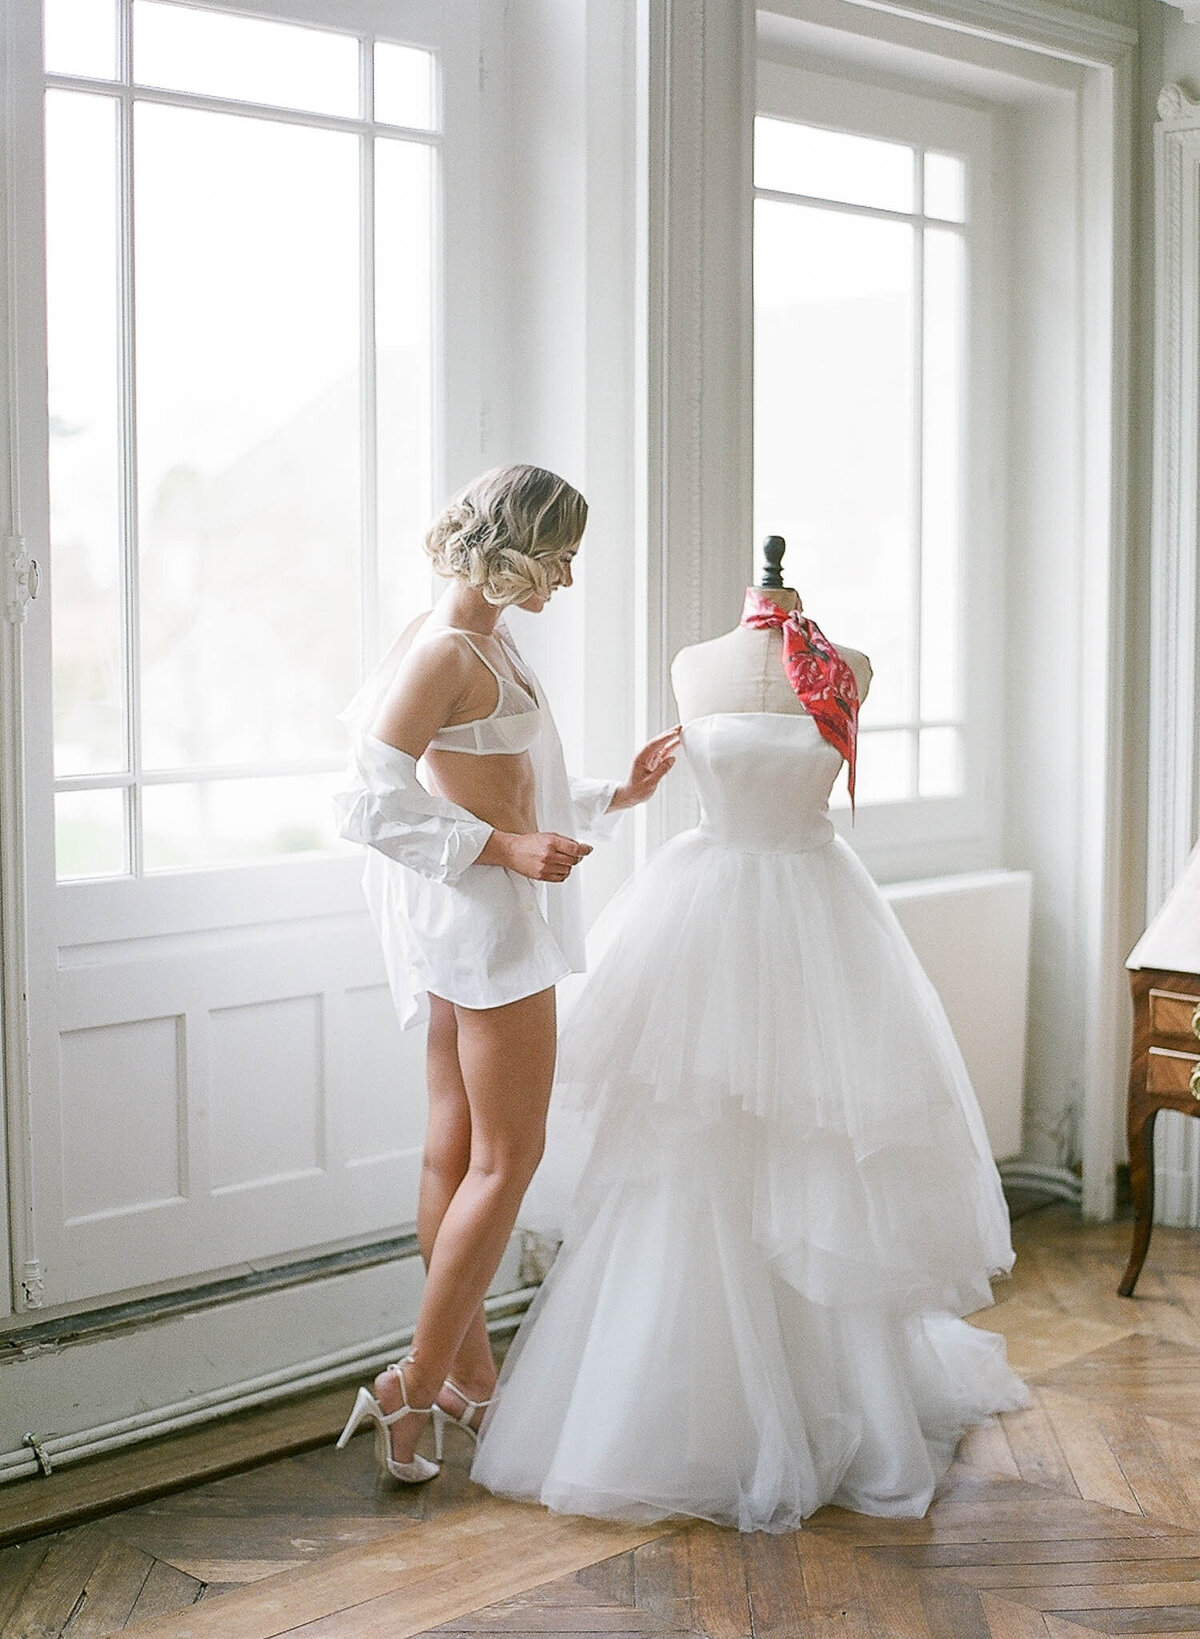 chateau-de-varennes-boudoir-wedding-couple-13